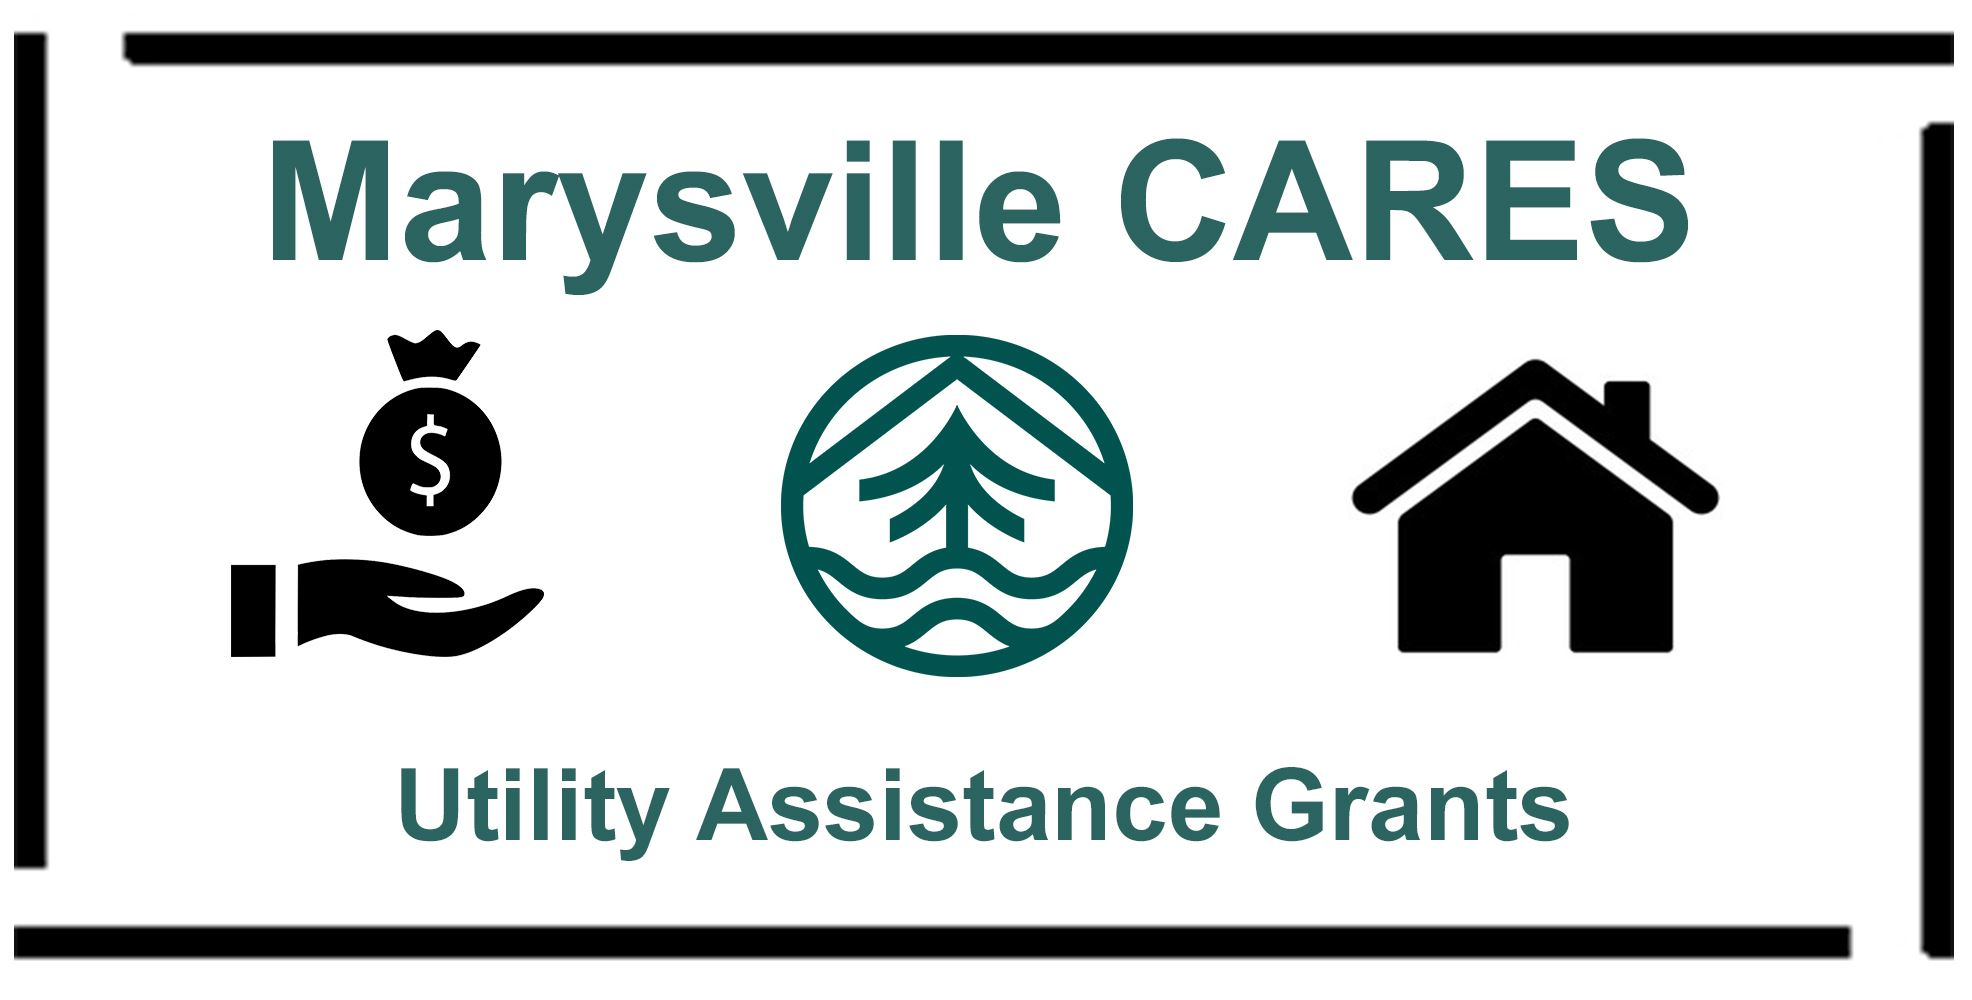 Marysville CARES Utility Assistance Grants